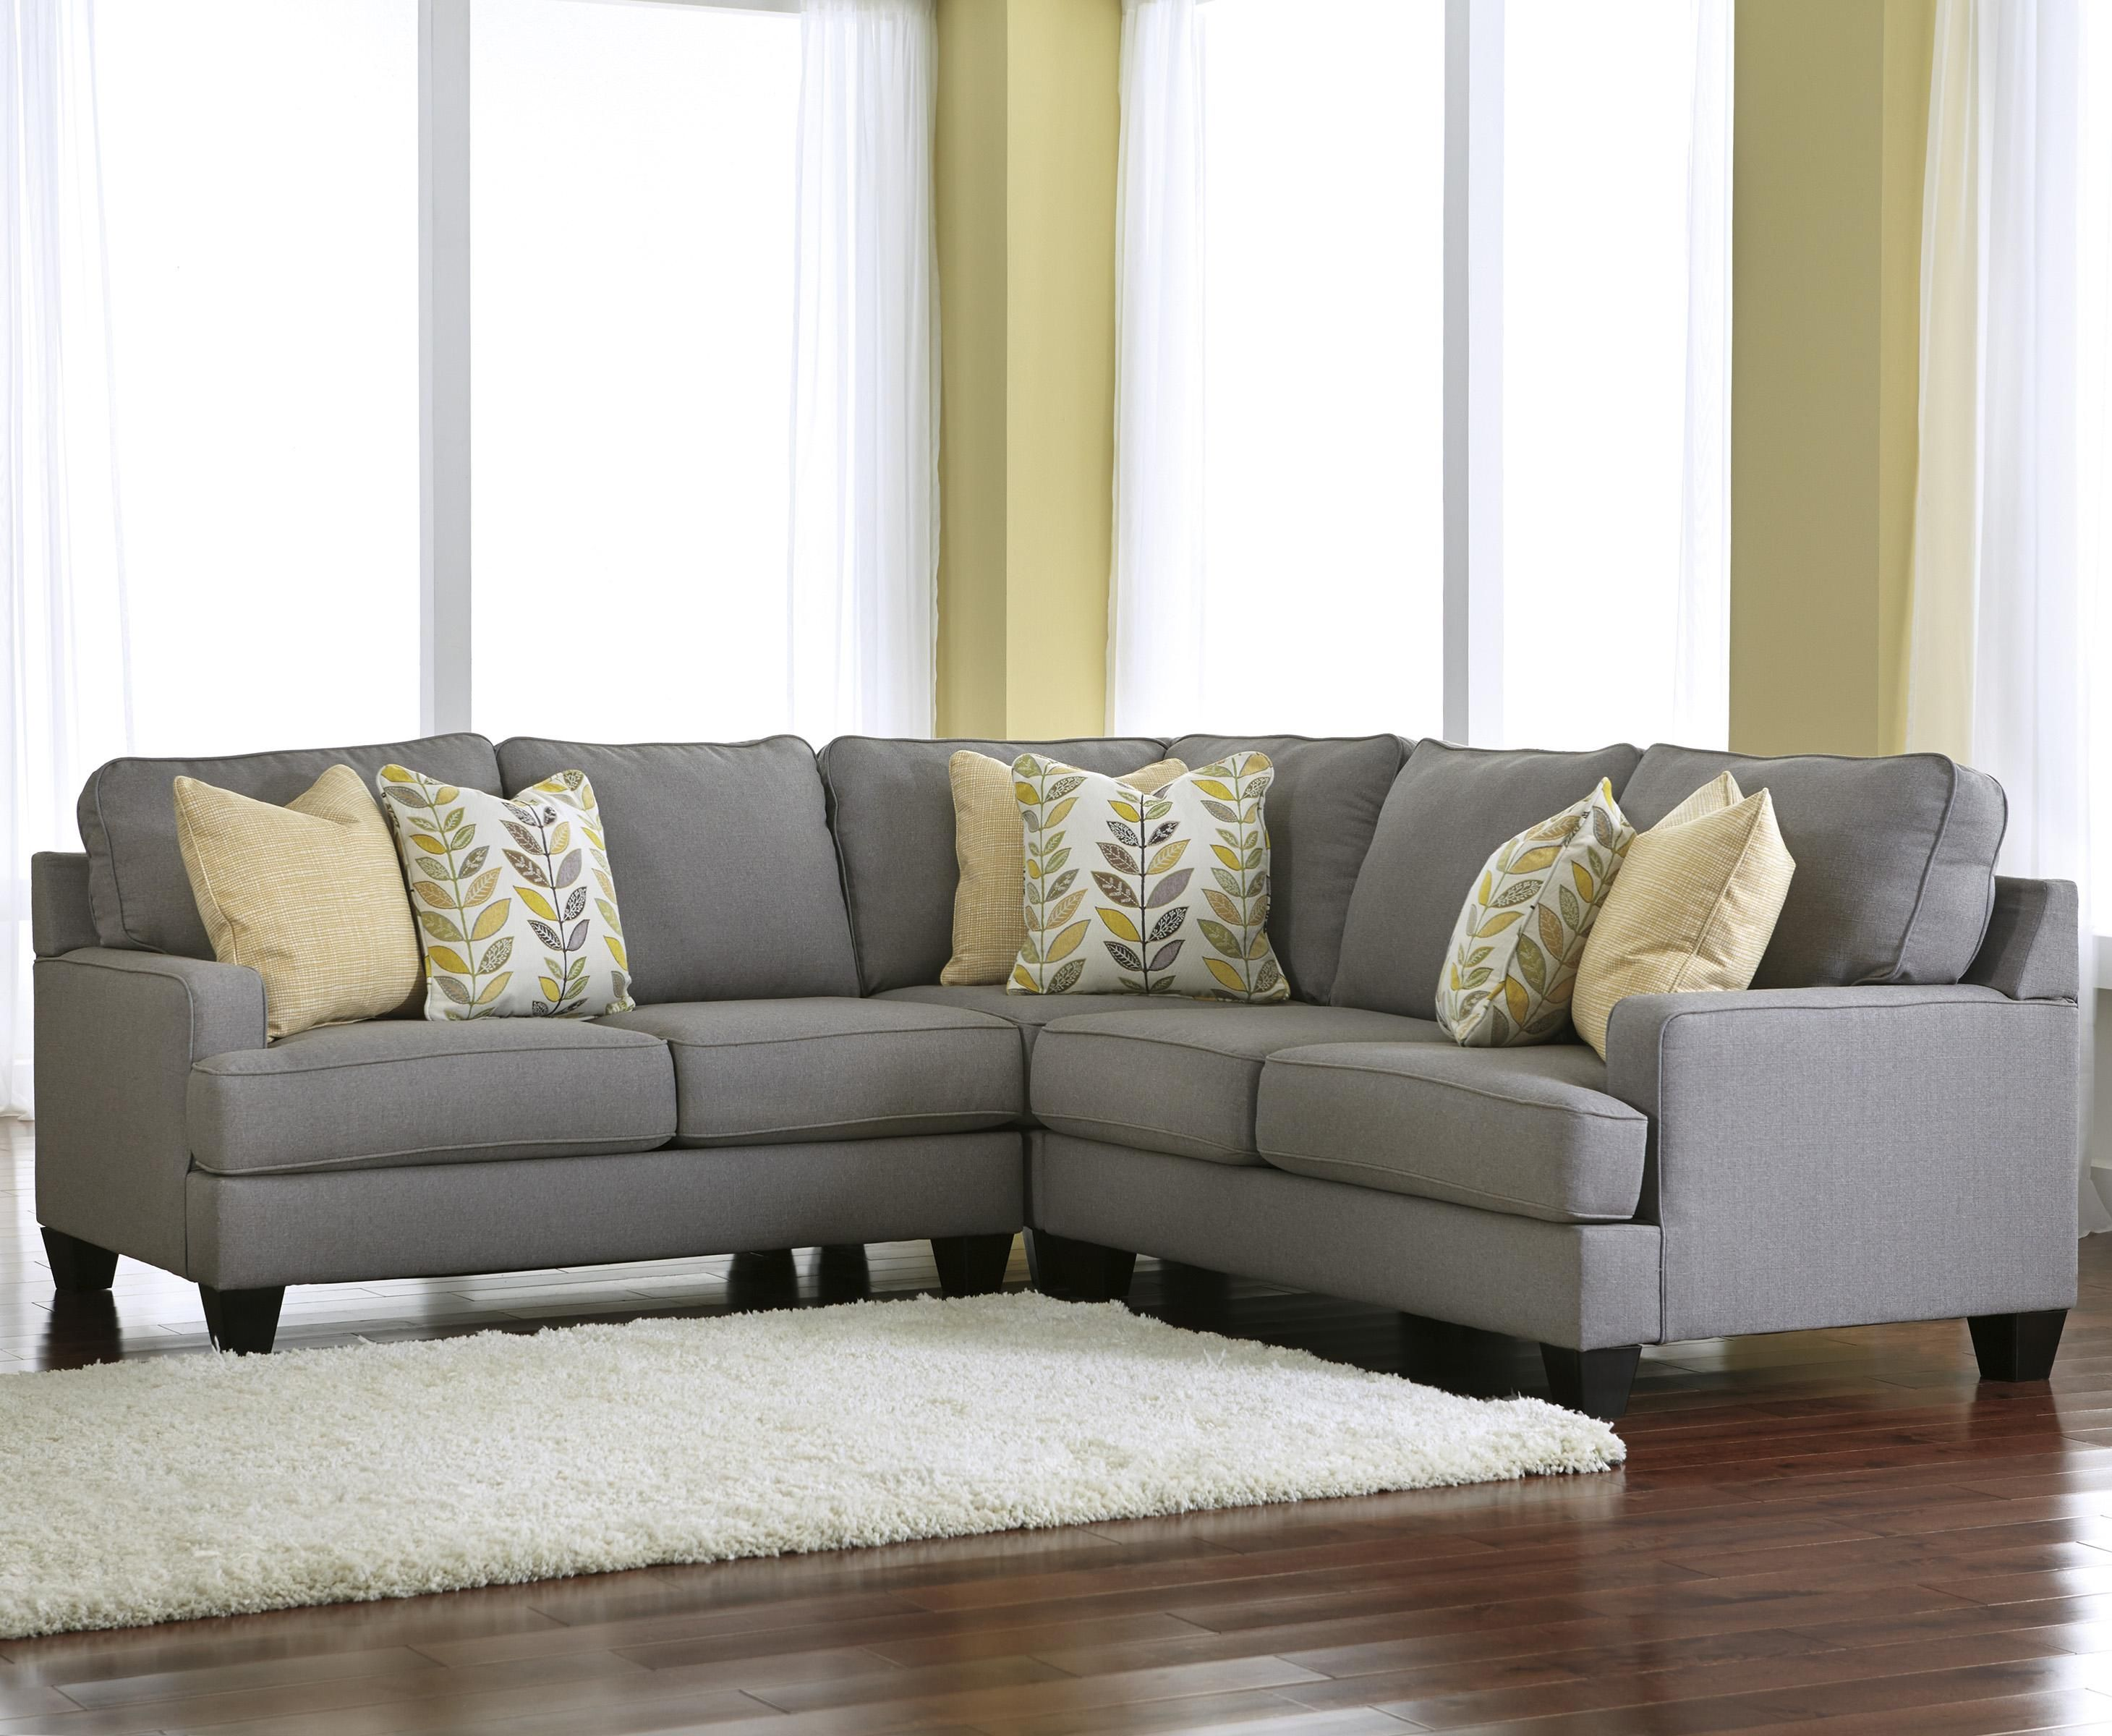 Chamberly - Alloy Modern 3-Piece Corner Sectional Sofa ...